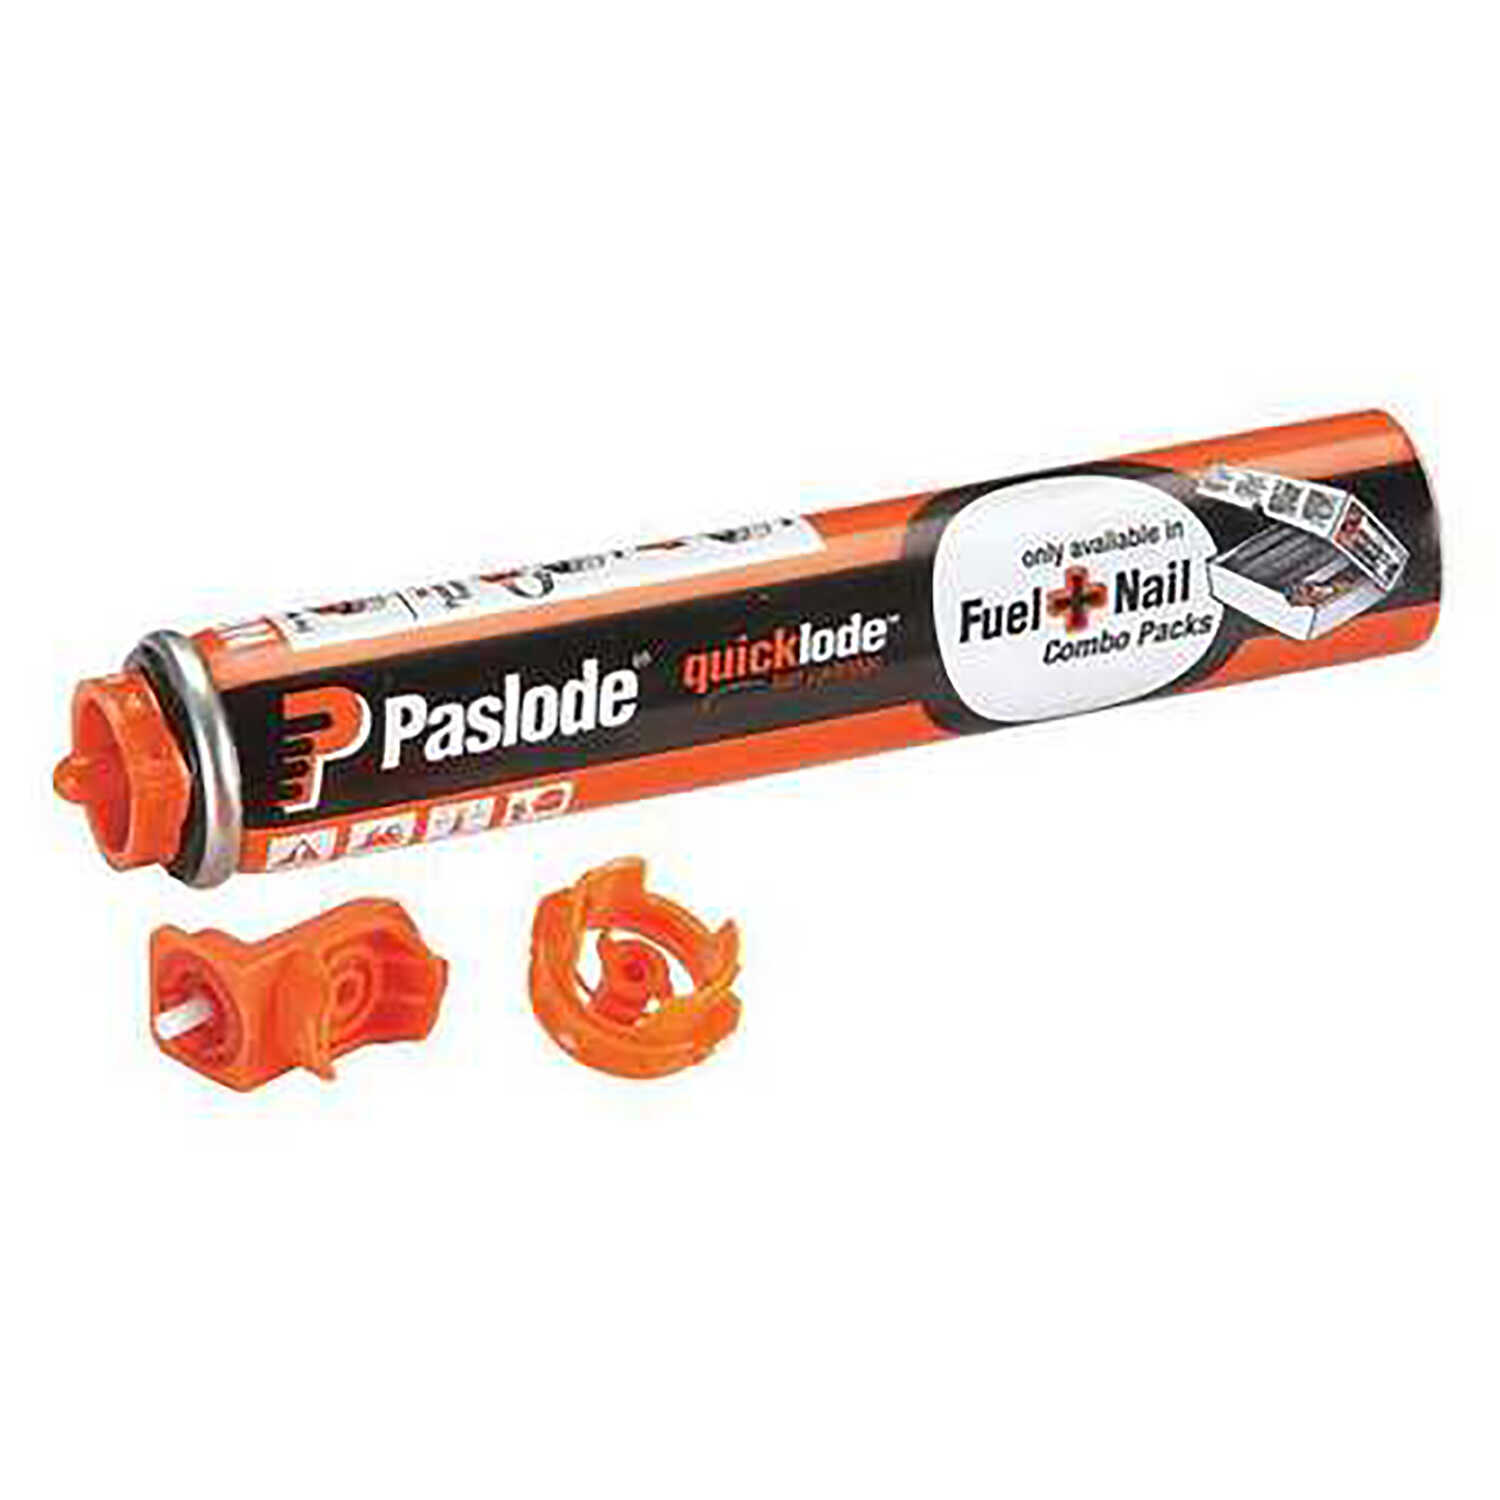 Paslode  QuickLode  All-Season Framing Fuel Cell  1 pk